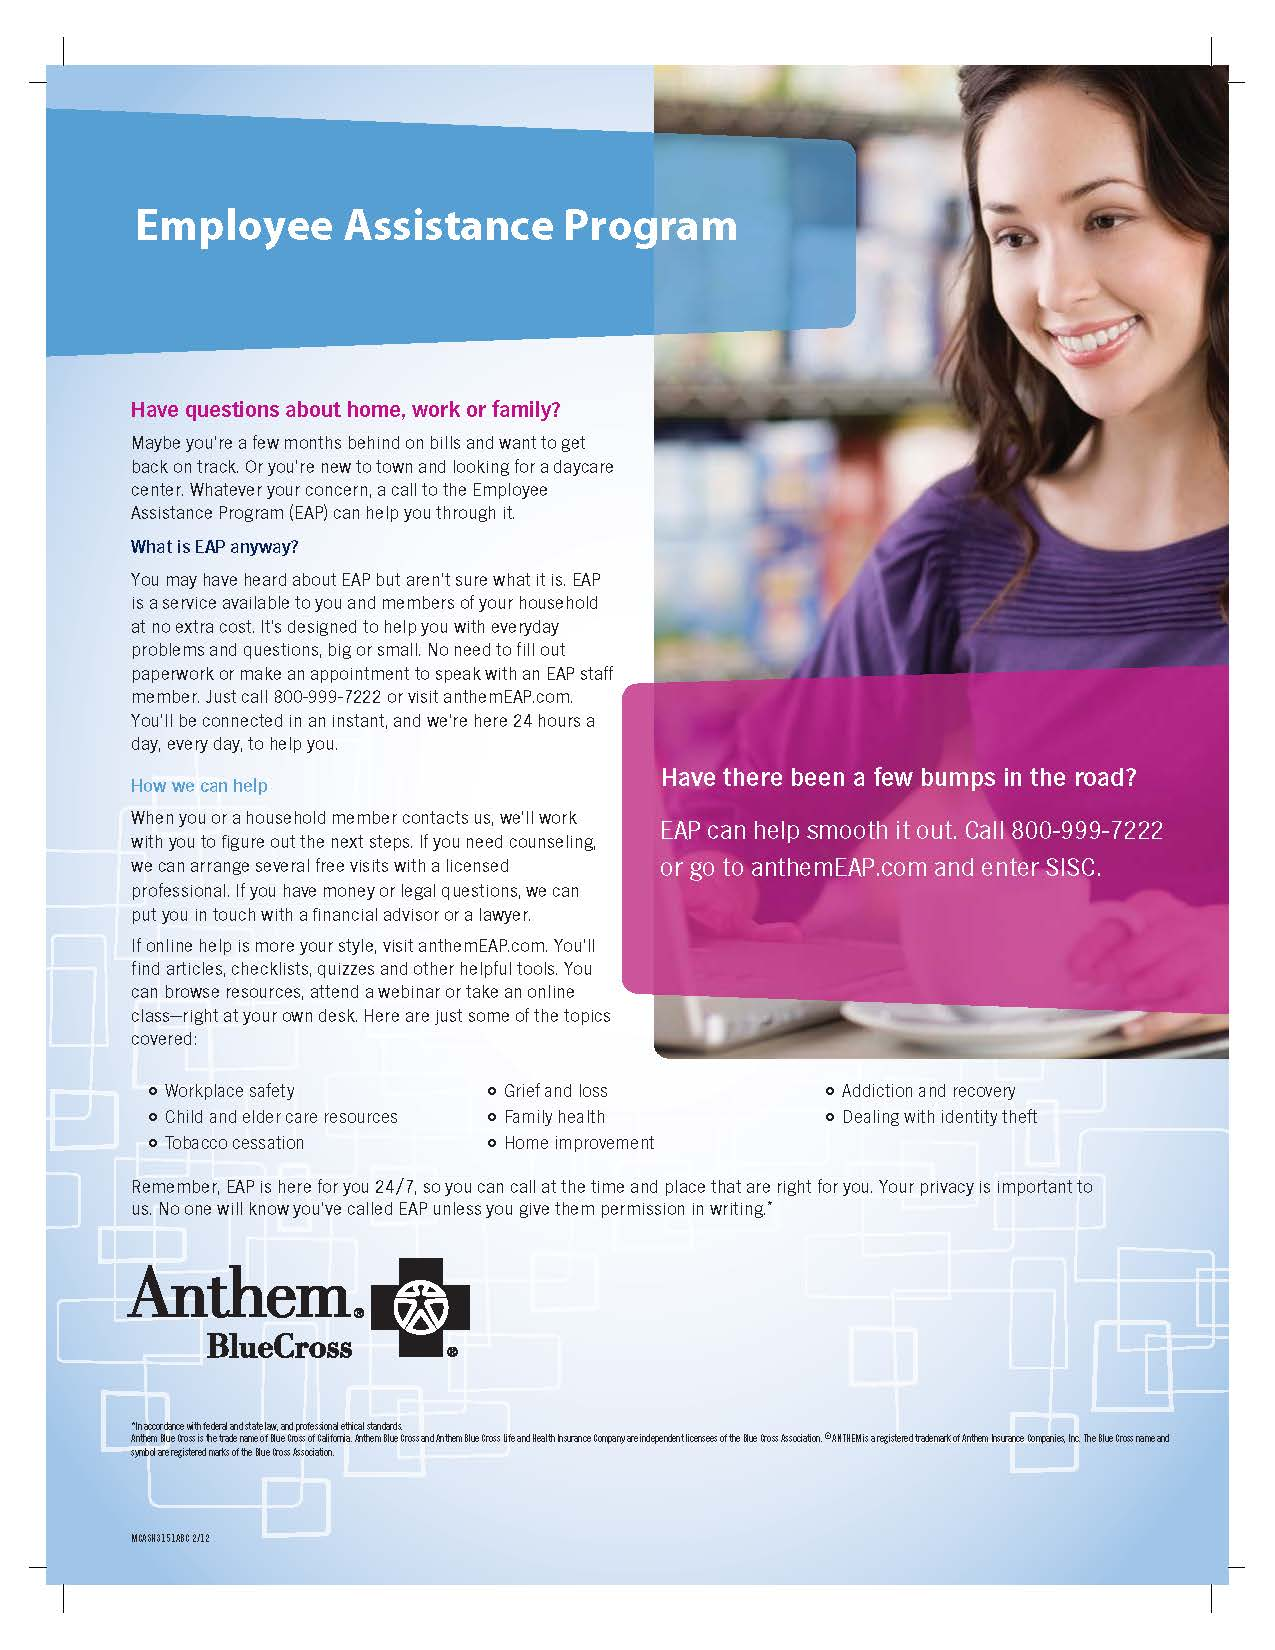 HDTA | Employee Assistance Program-Anthem Blue Cross